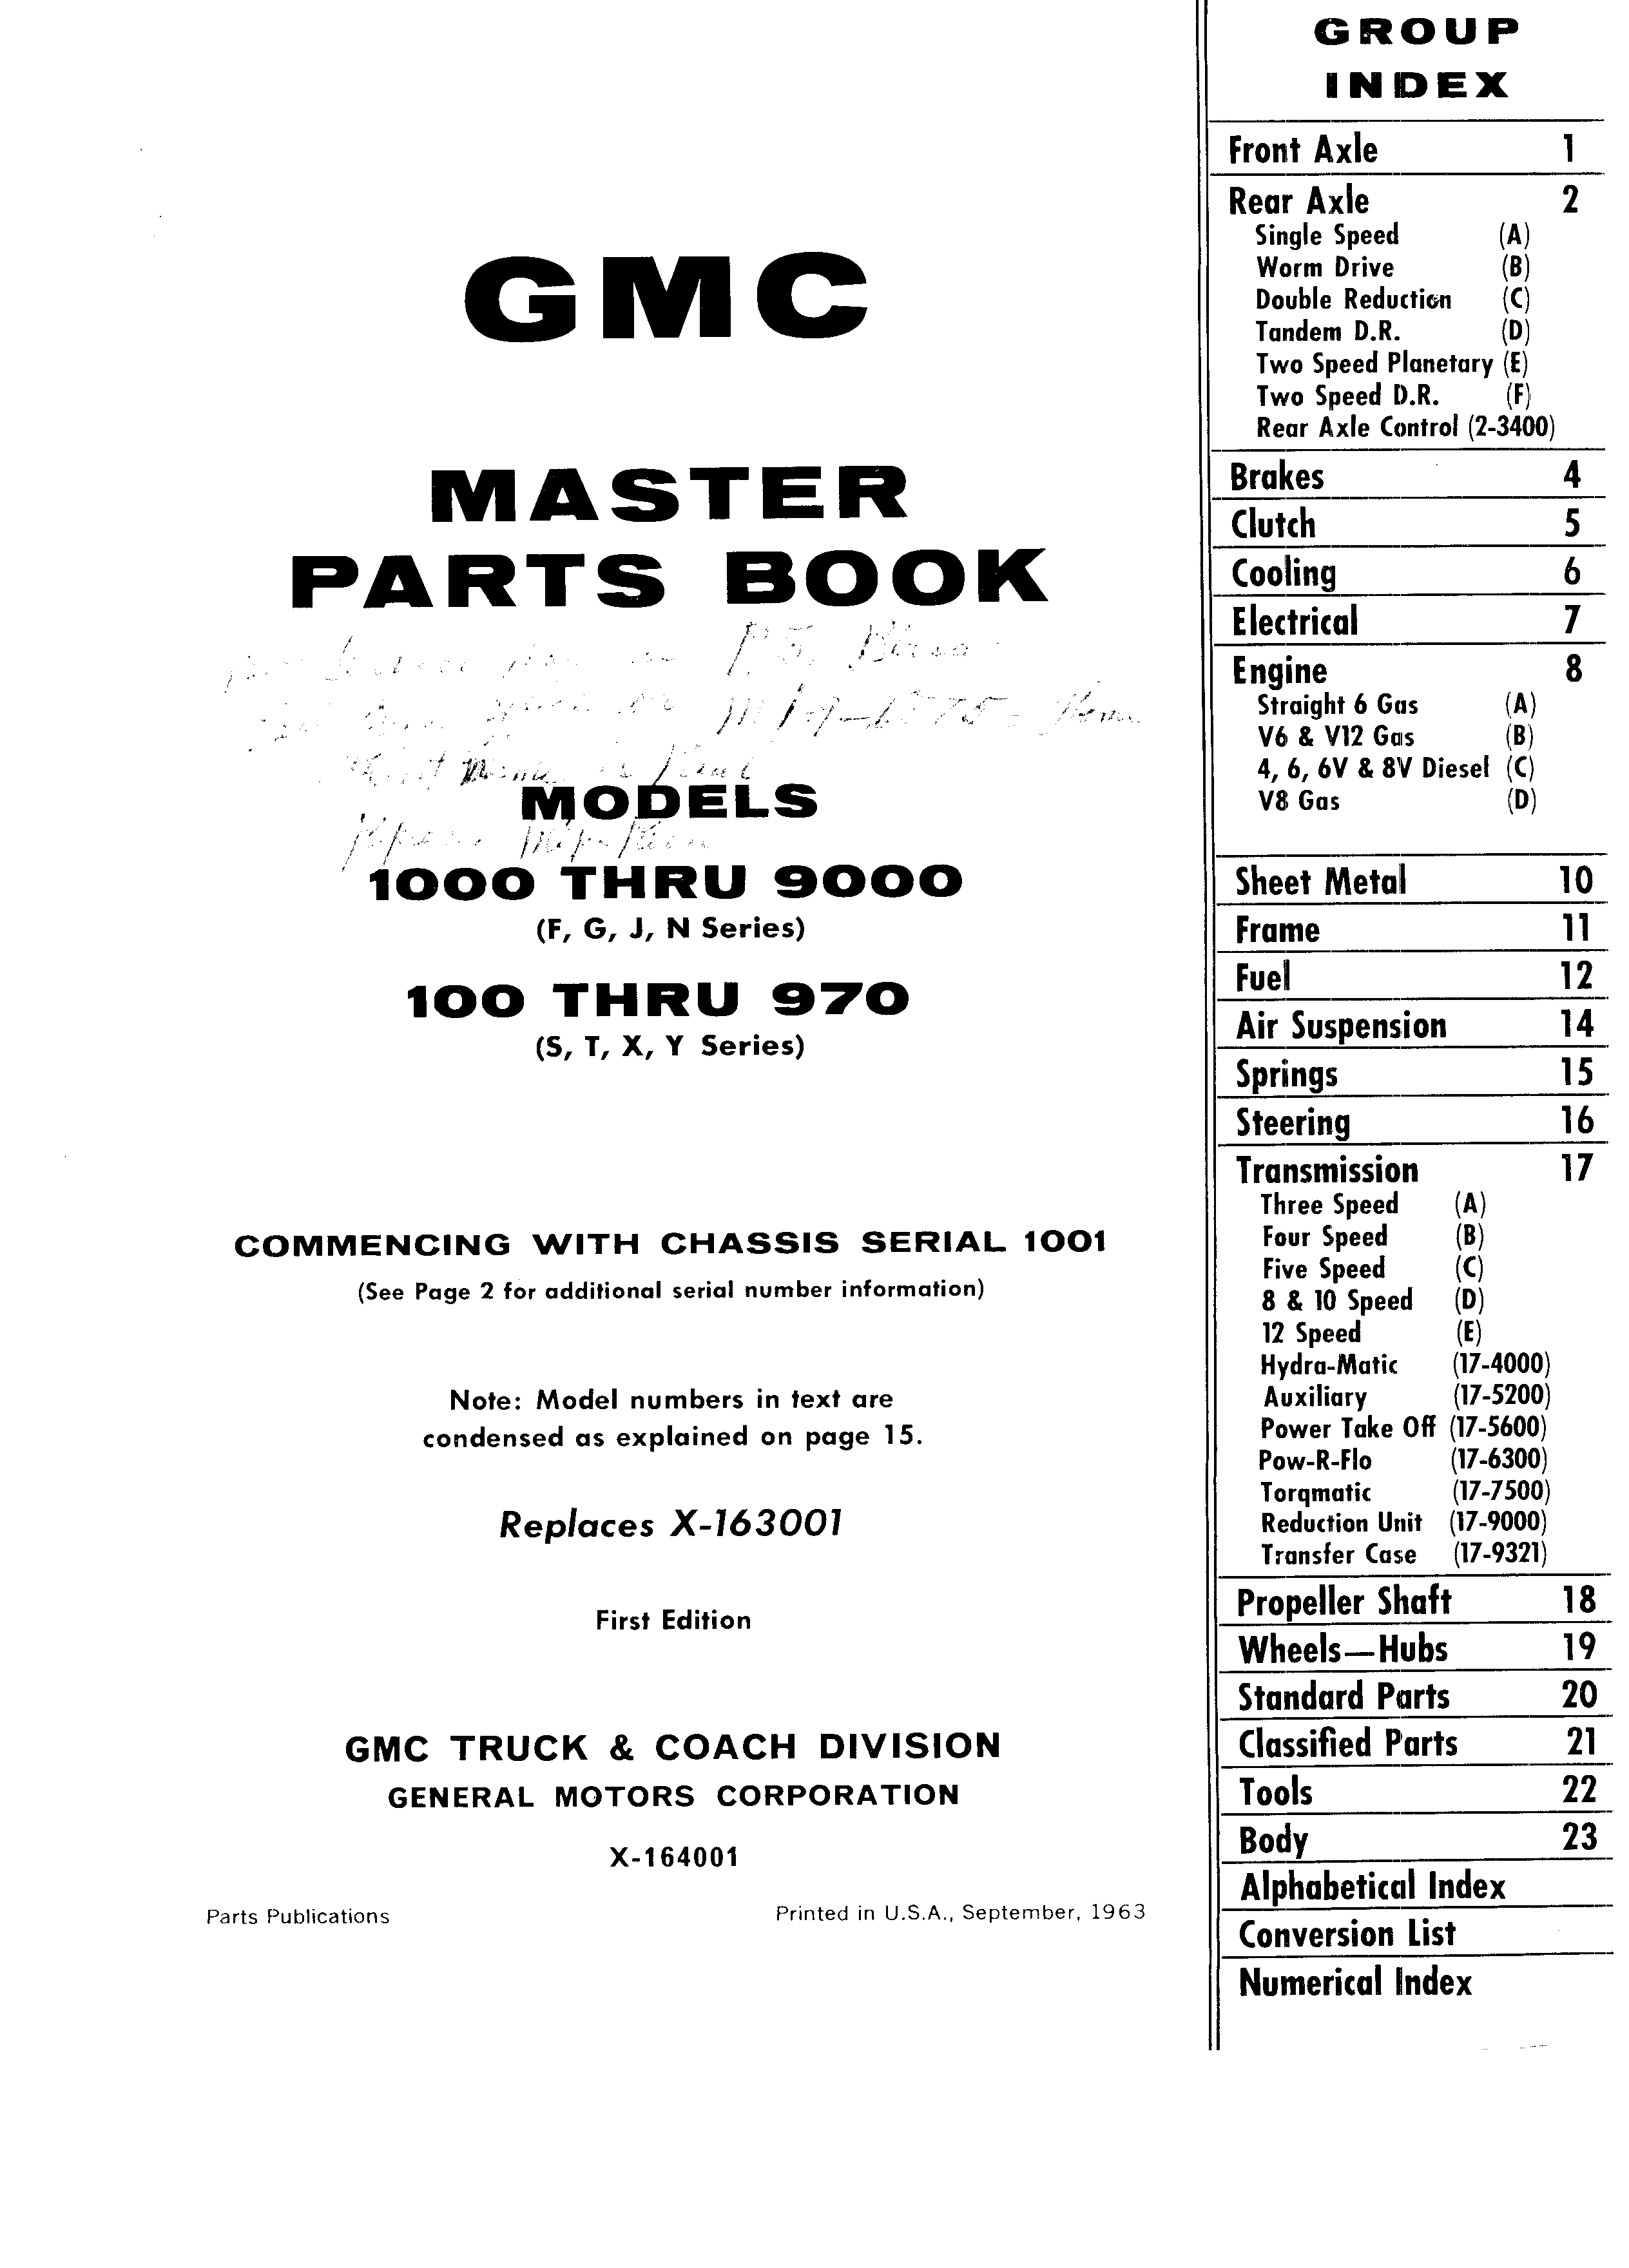 Master Parts Book X-164001 September 1963